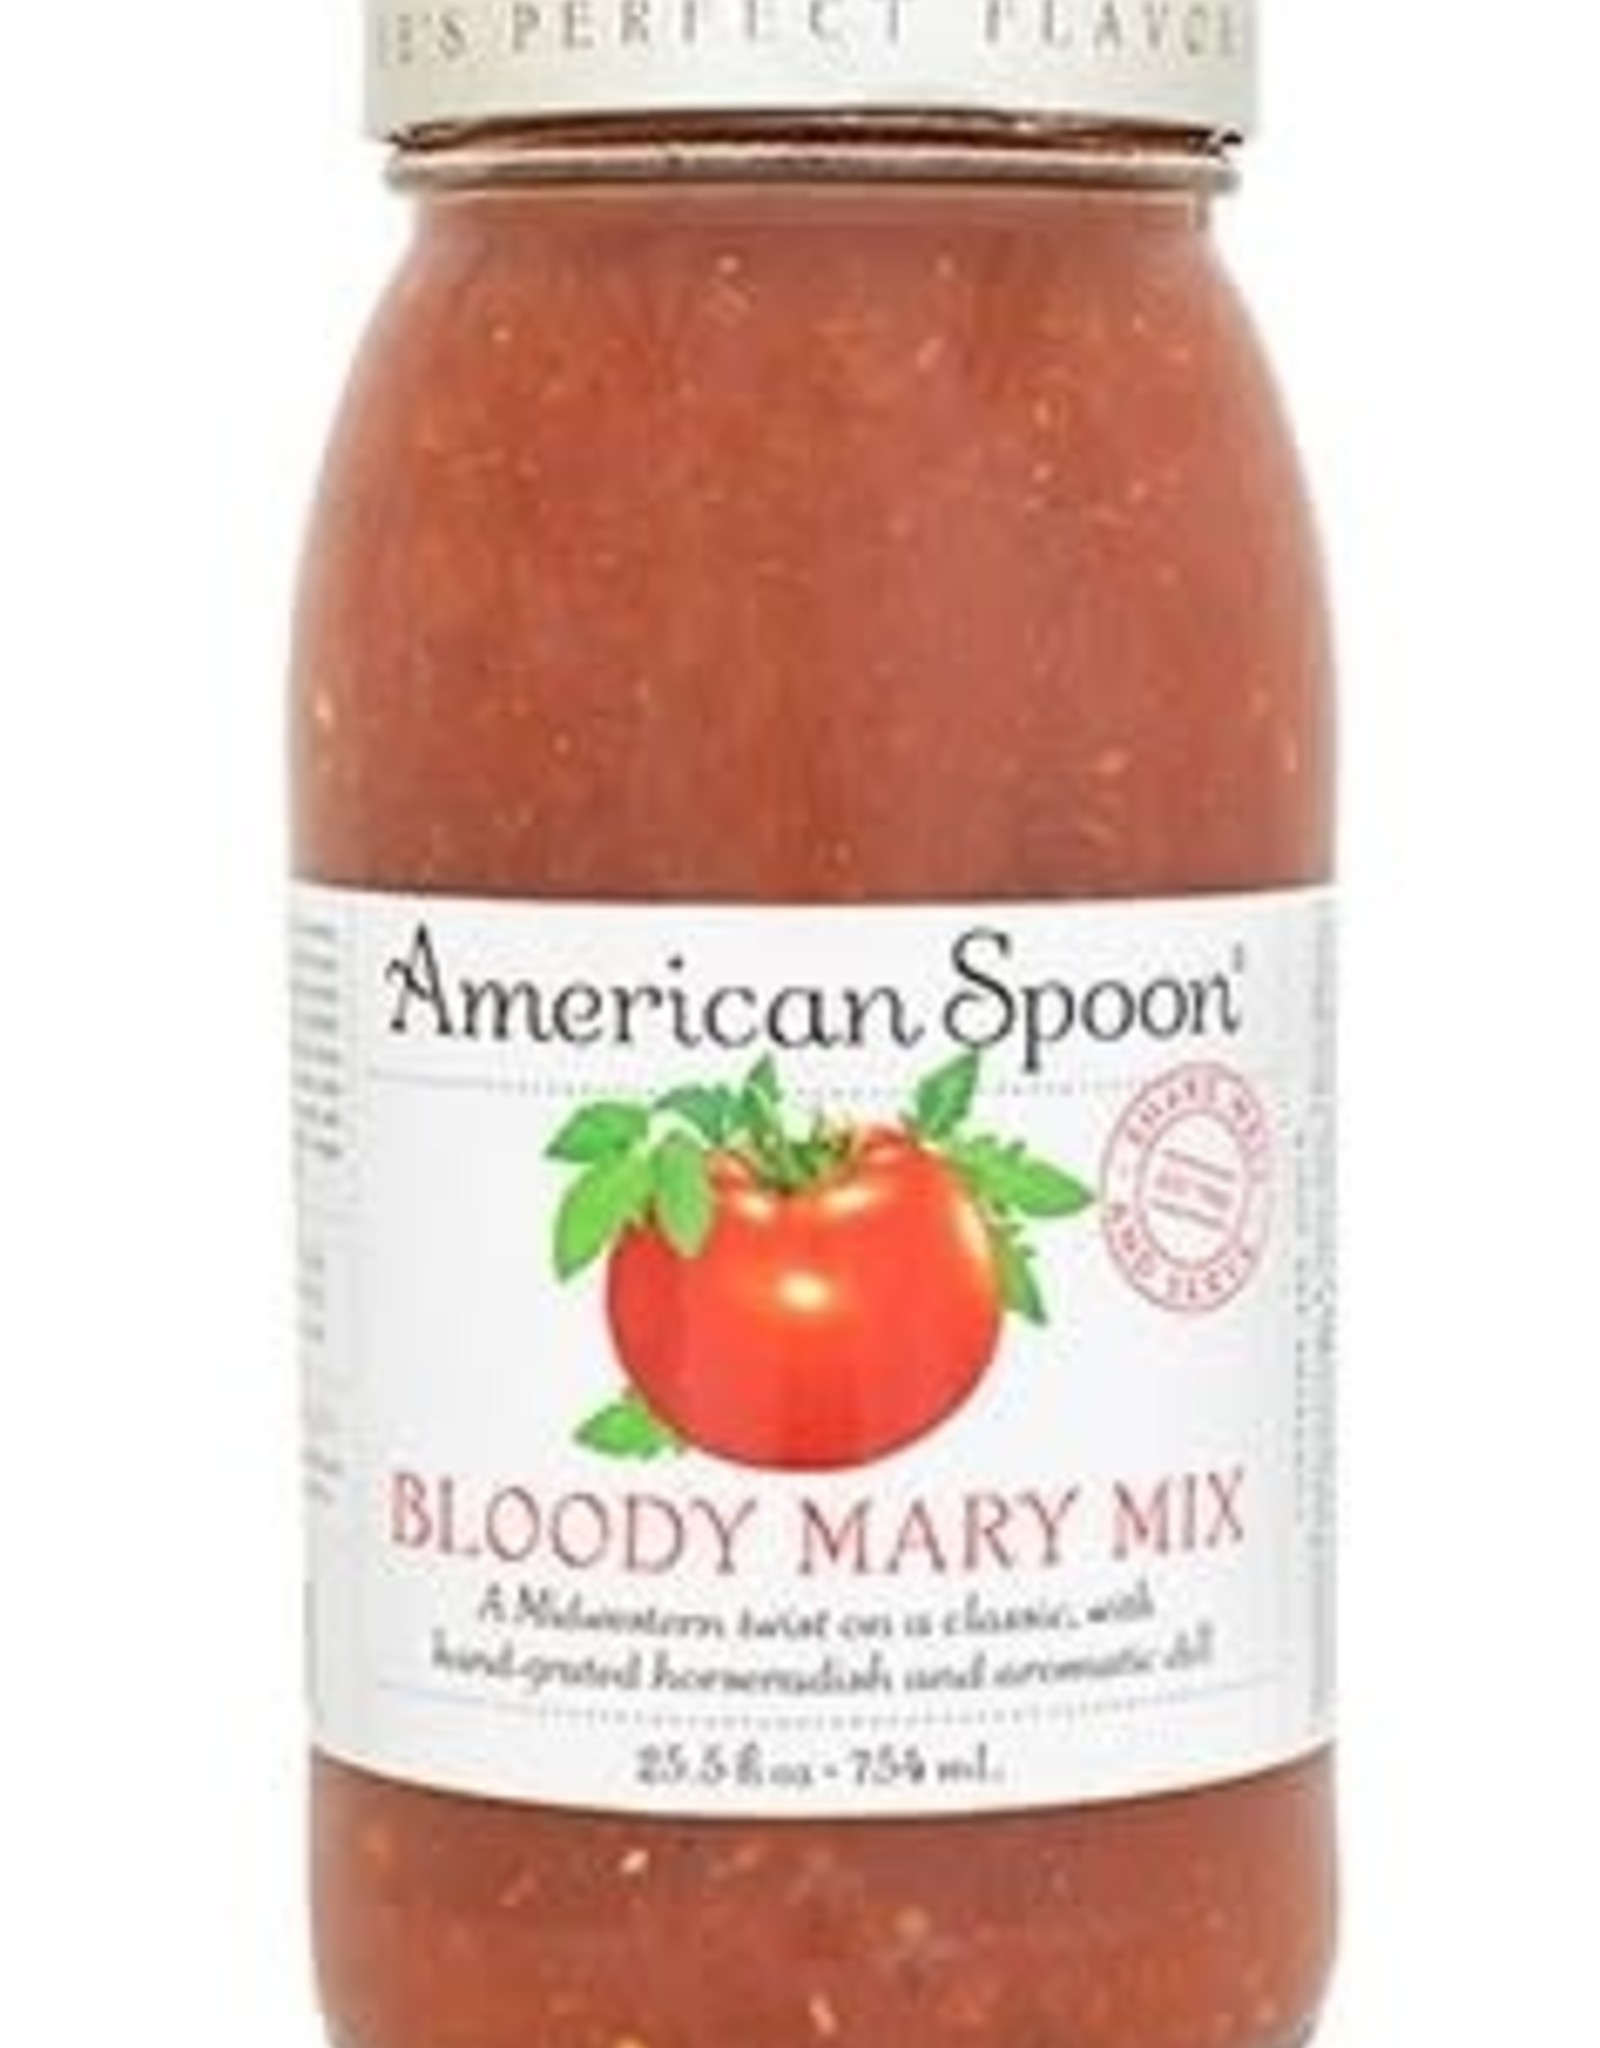 American Spoon AMERICAN SPOON BLOODY MARY MIX